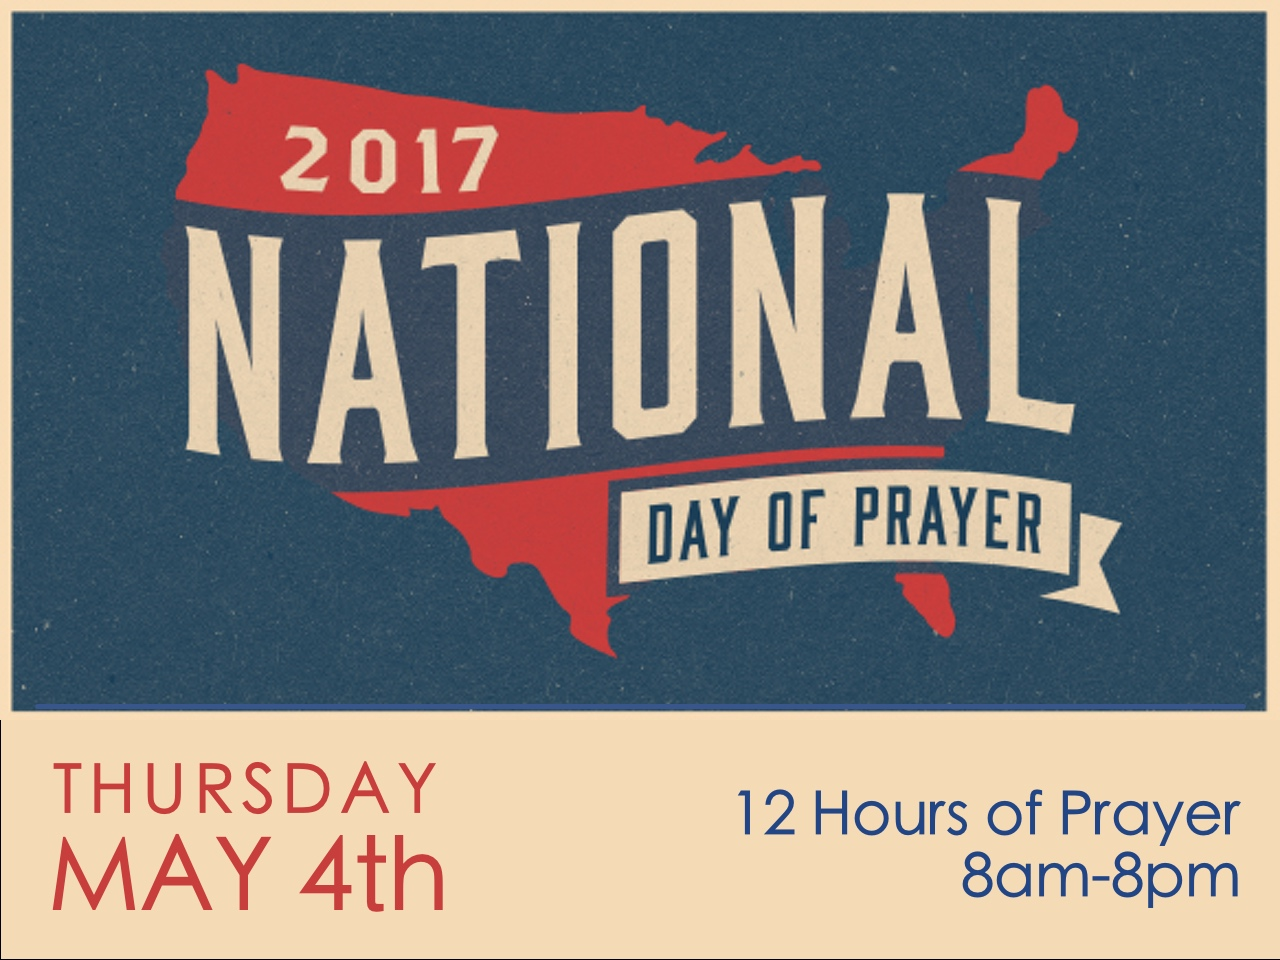 Like our Facebook page and join the National Day of Prayer Event!  Just pick one hour in the 12 hour period to pray over our Nation.  Click  here  to join!